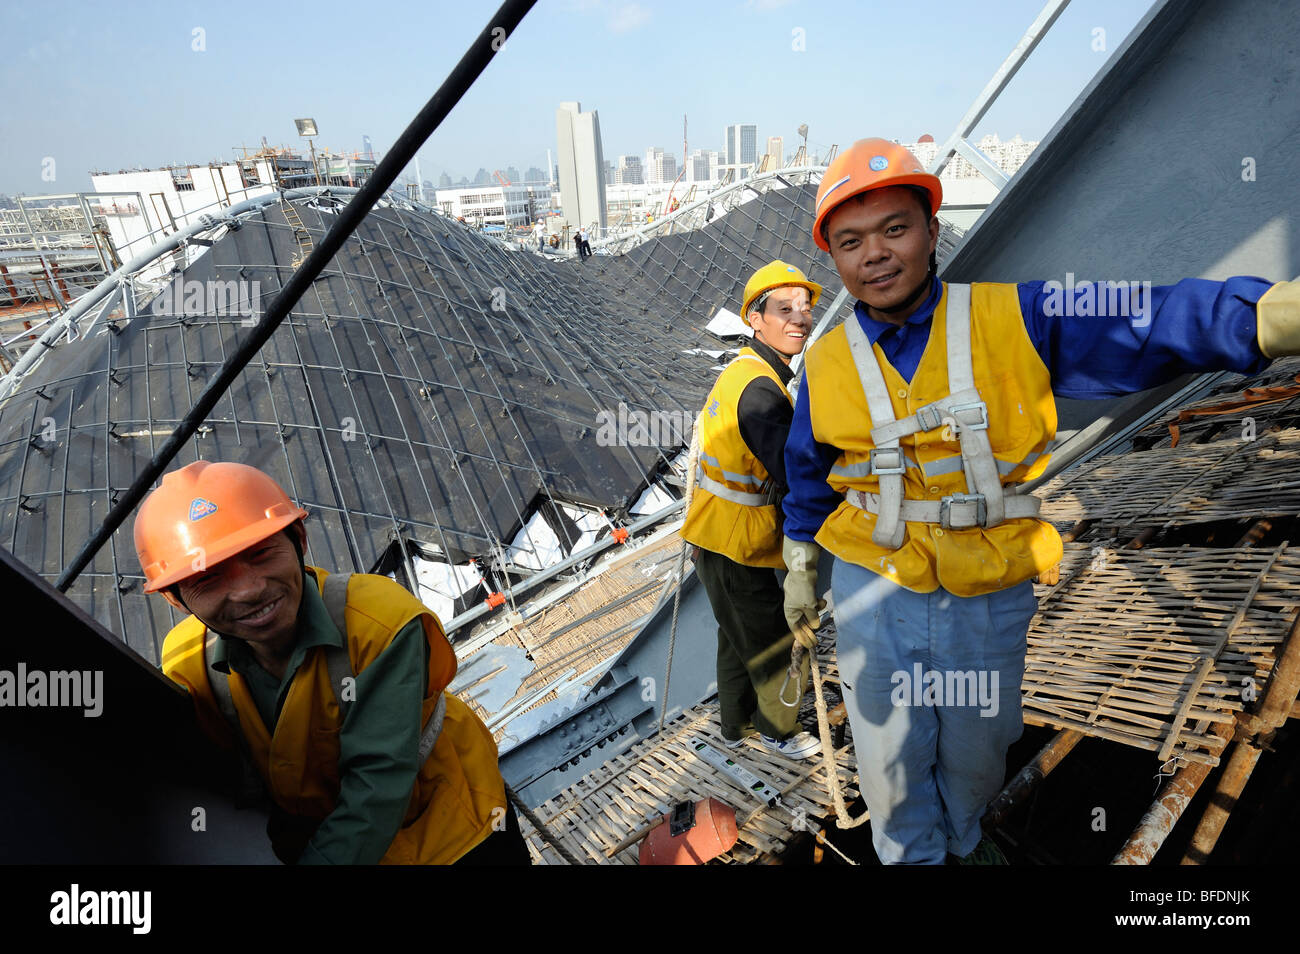 Chinese workers at the construction site of the World Expo 2010 in Shanghai, China.15-Oct-2009 - Stock Image